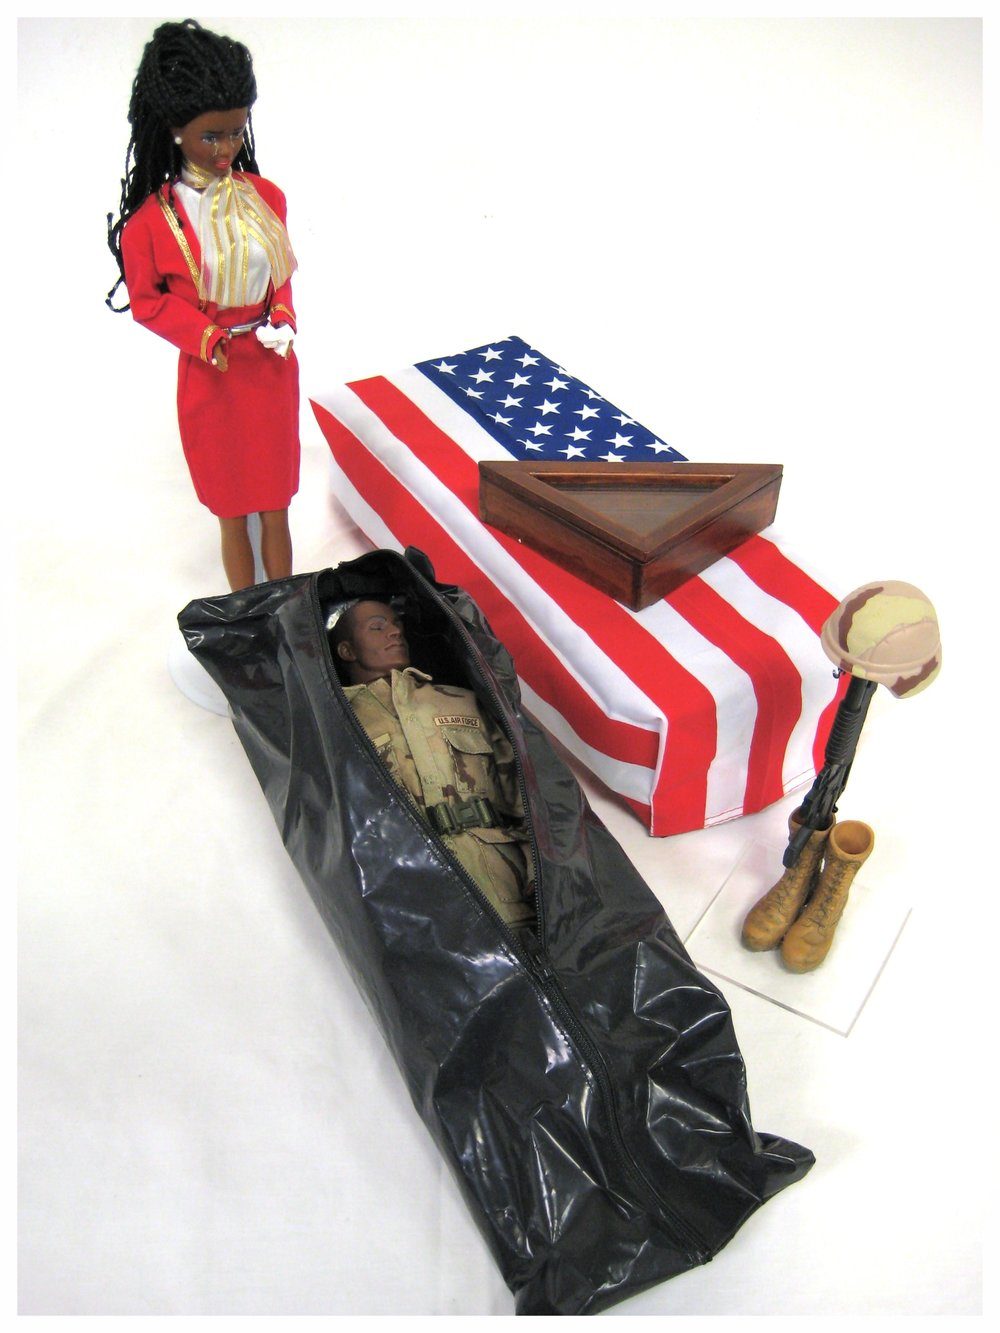 GI Joe reality set with body bag and flag